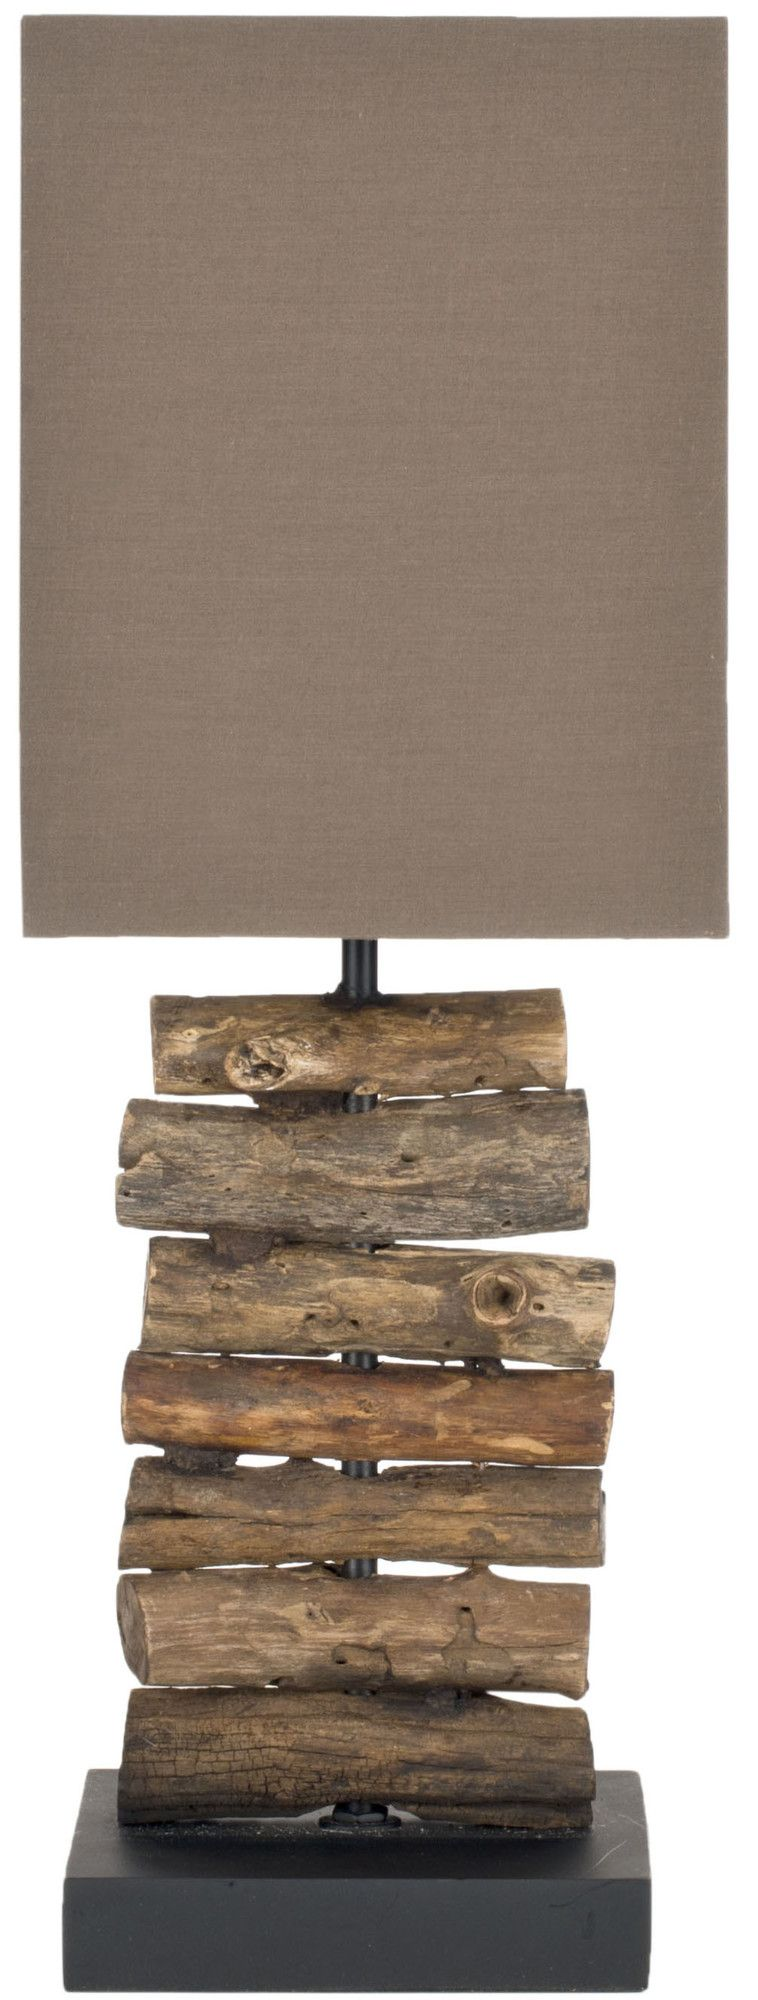 Safavieh woodland 197 h table lamp with square shade allmodern safavieh woodland h table lamp with square shade geotapseo Gallery